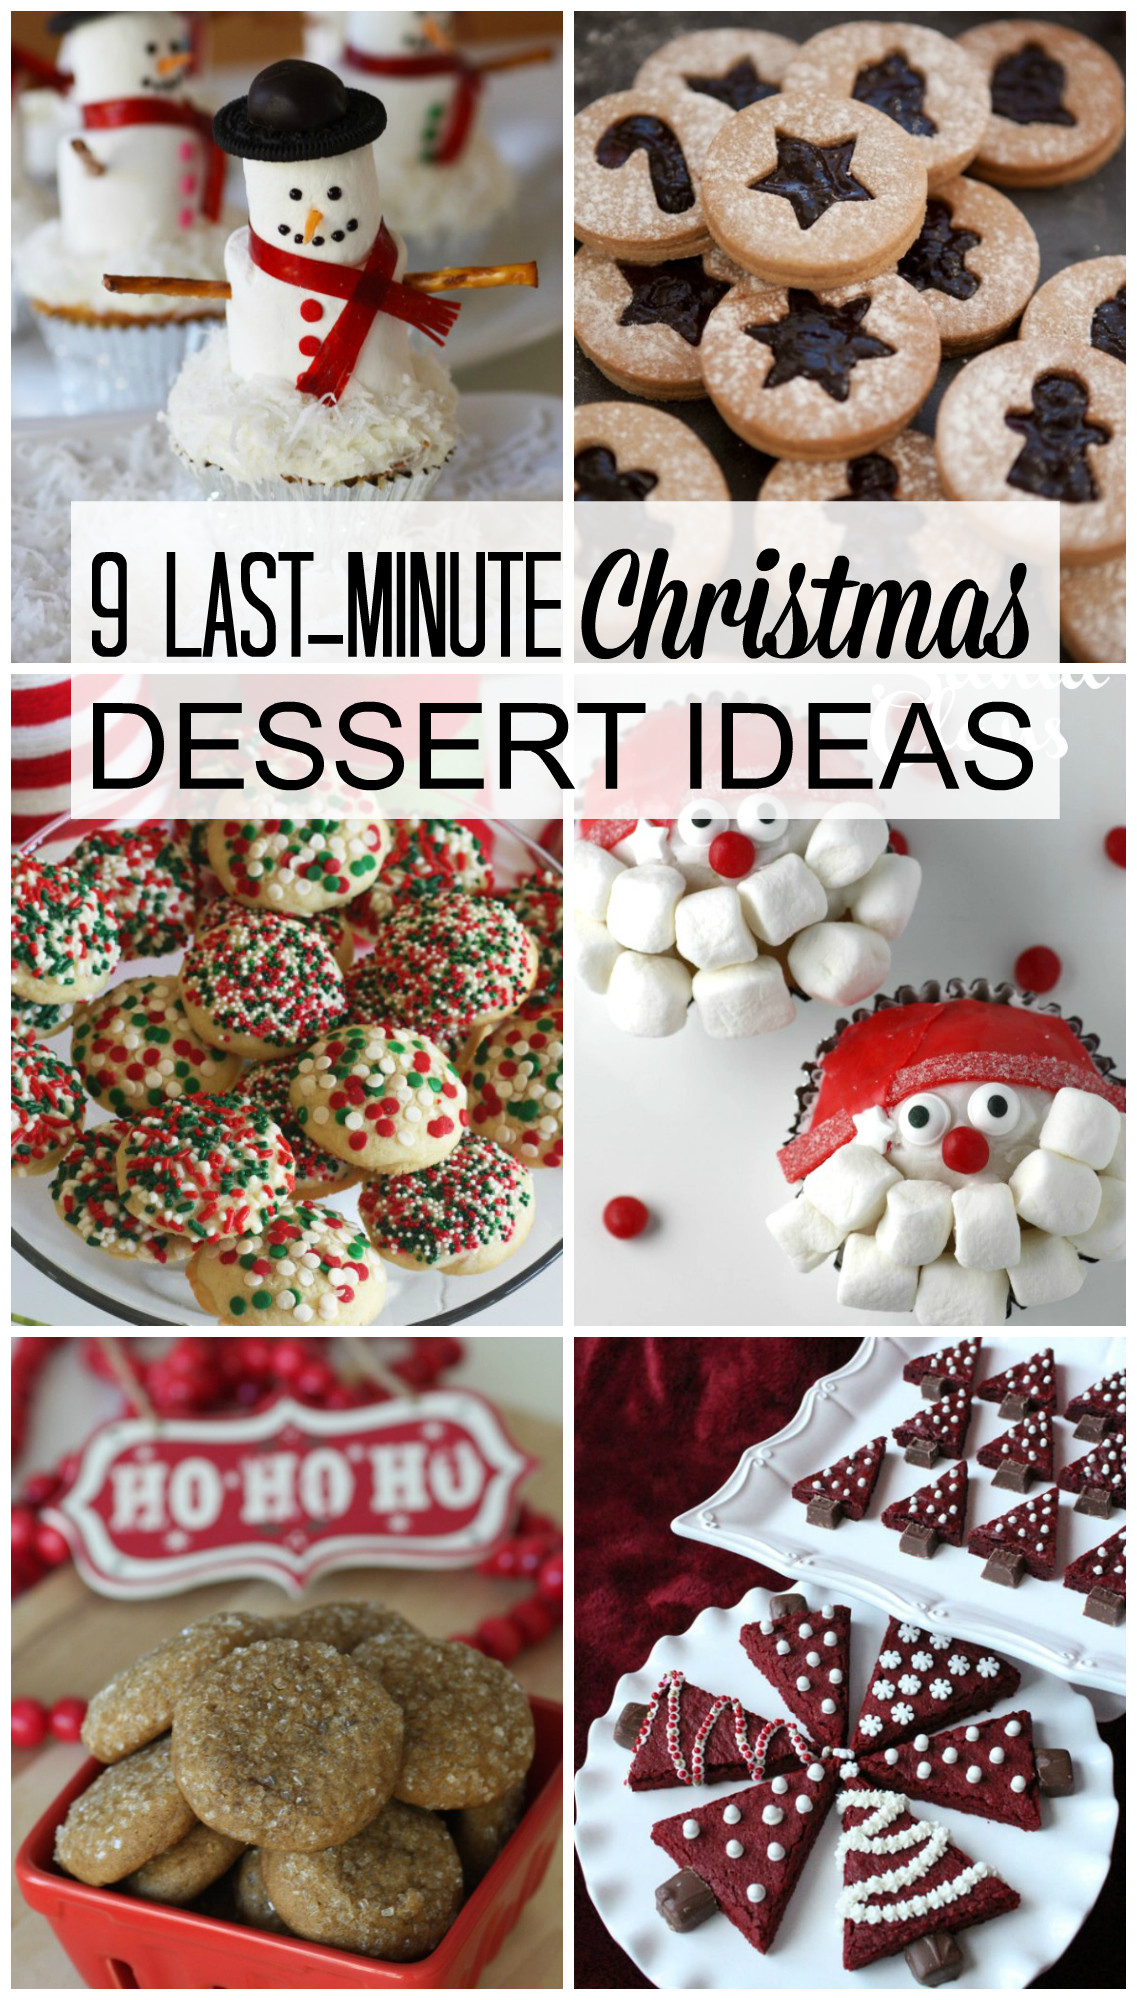 Christmas Dessert Ideas For Party  9 Last Minute Christmas Dessert Ideas